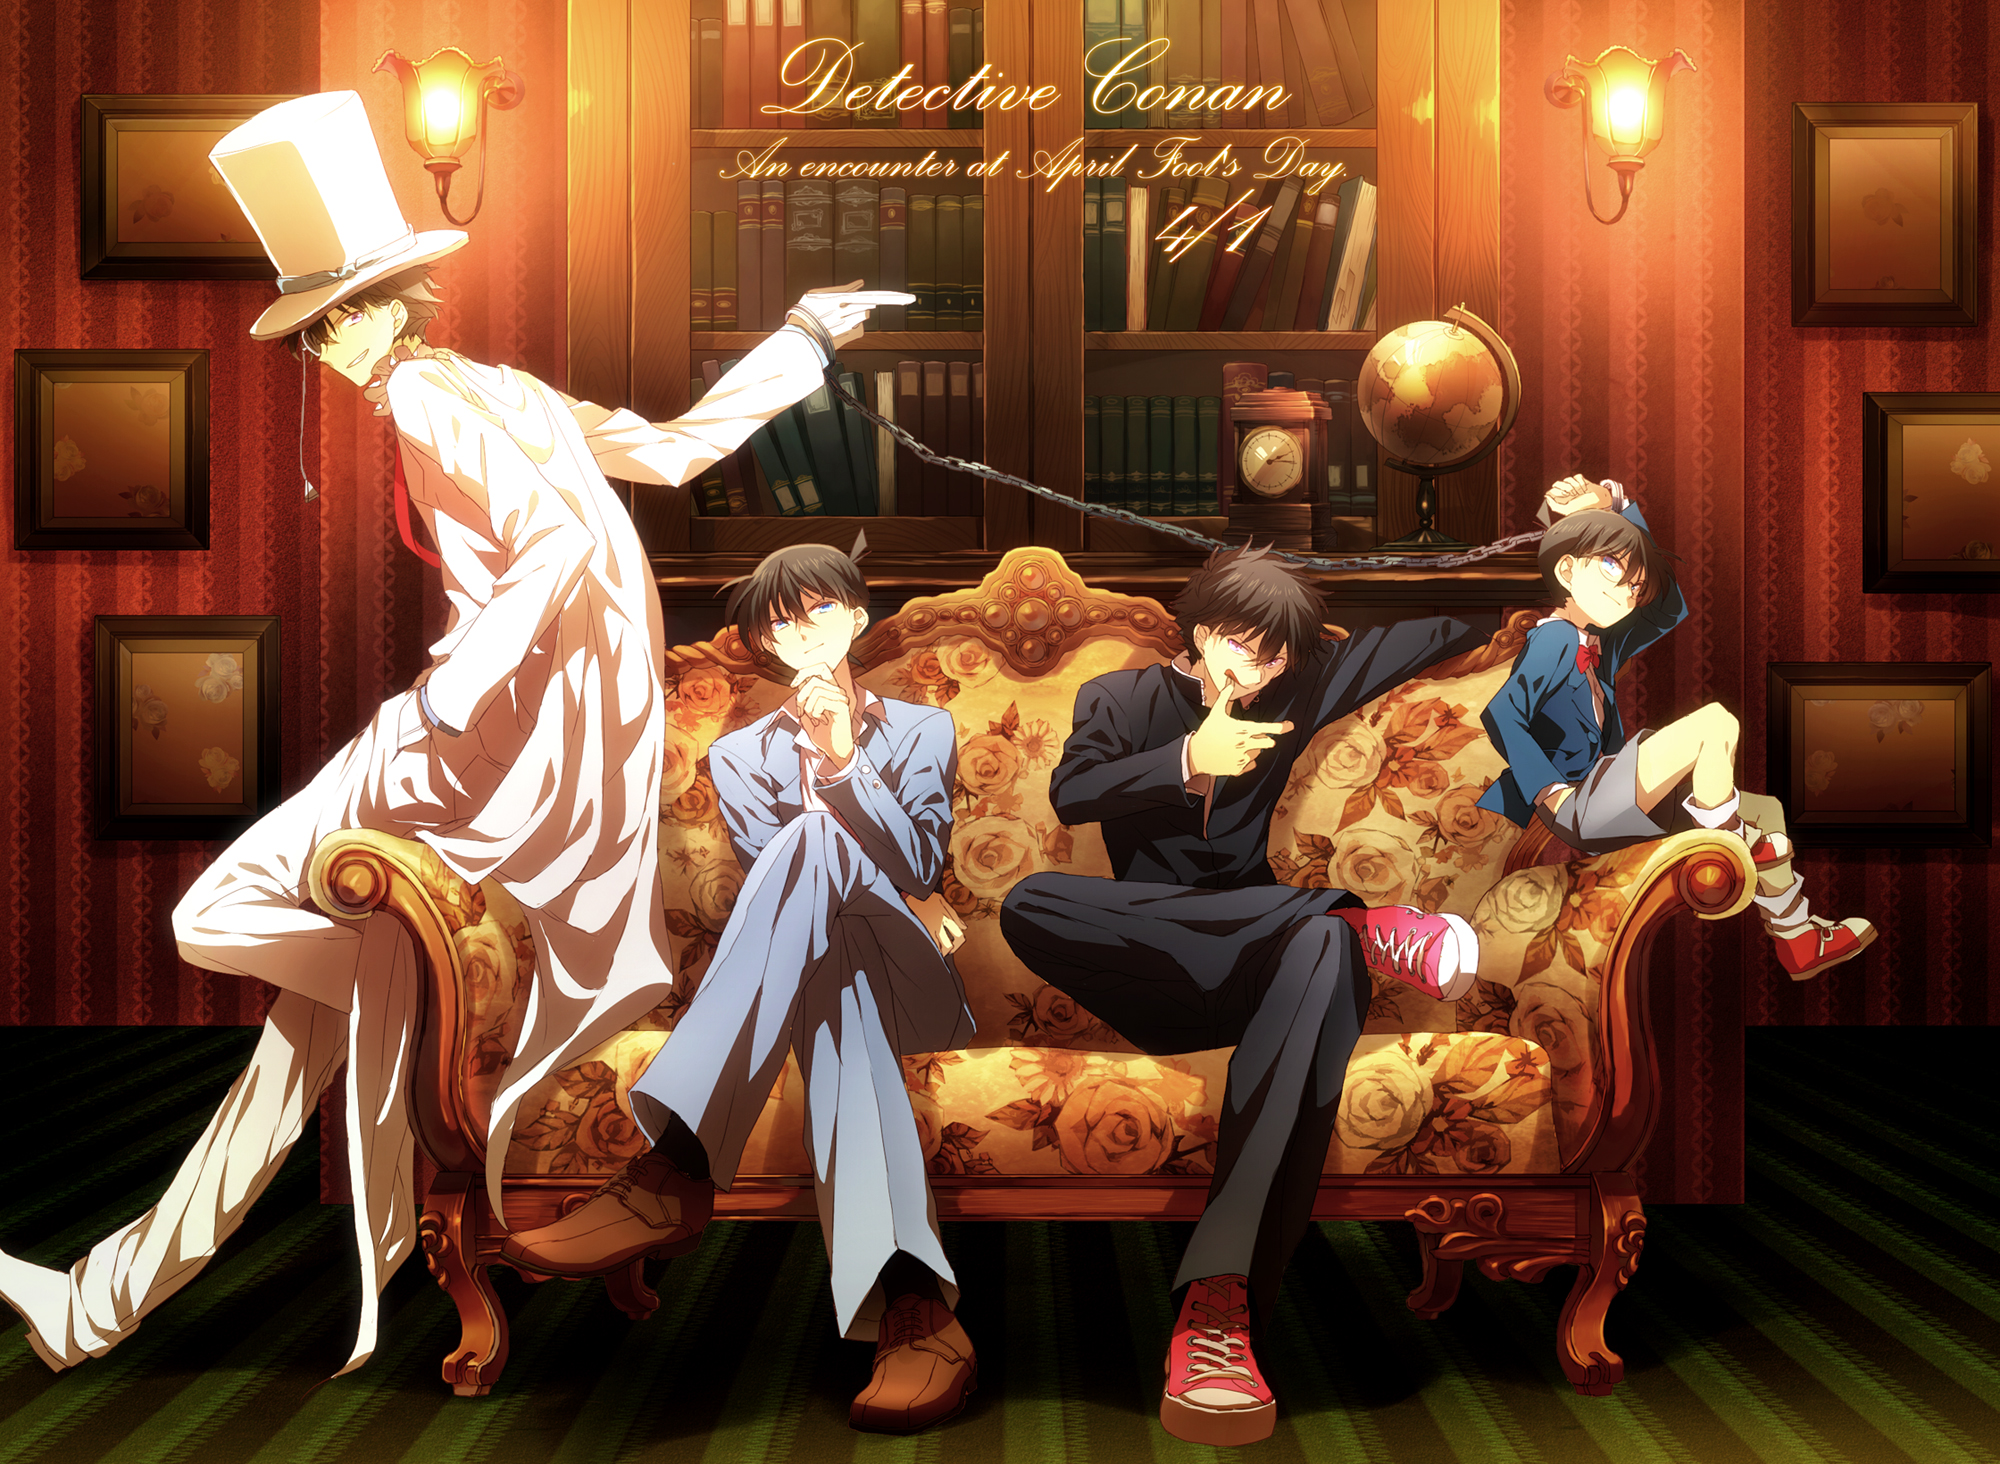 Detective Conan images Conan kaito shinichi wallpaper photos 33748081 2000x1464